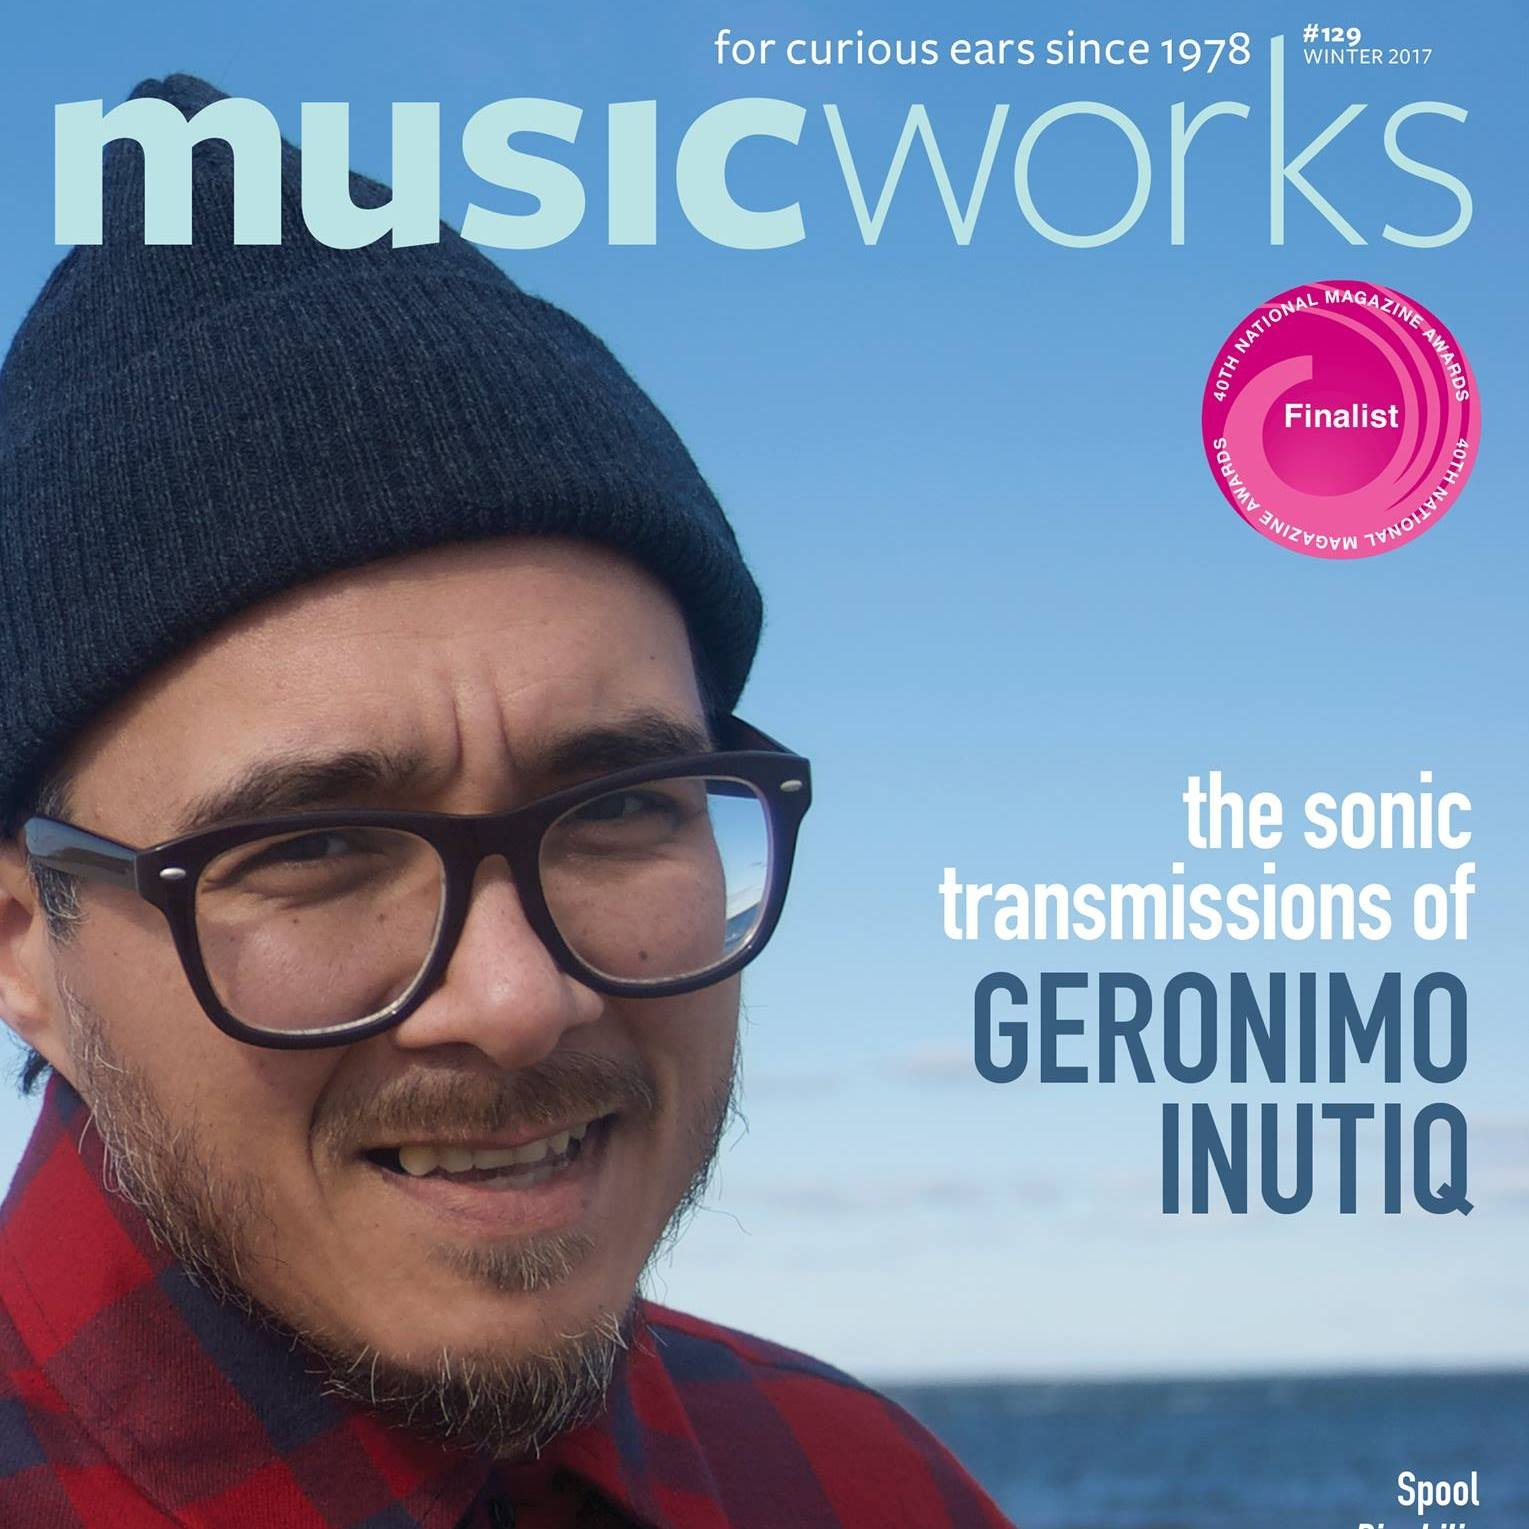 https://www.musicworks.ca/featured-article/sonic-transmissions-geronimo-inutiq